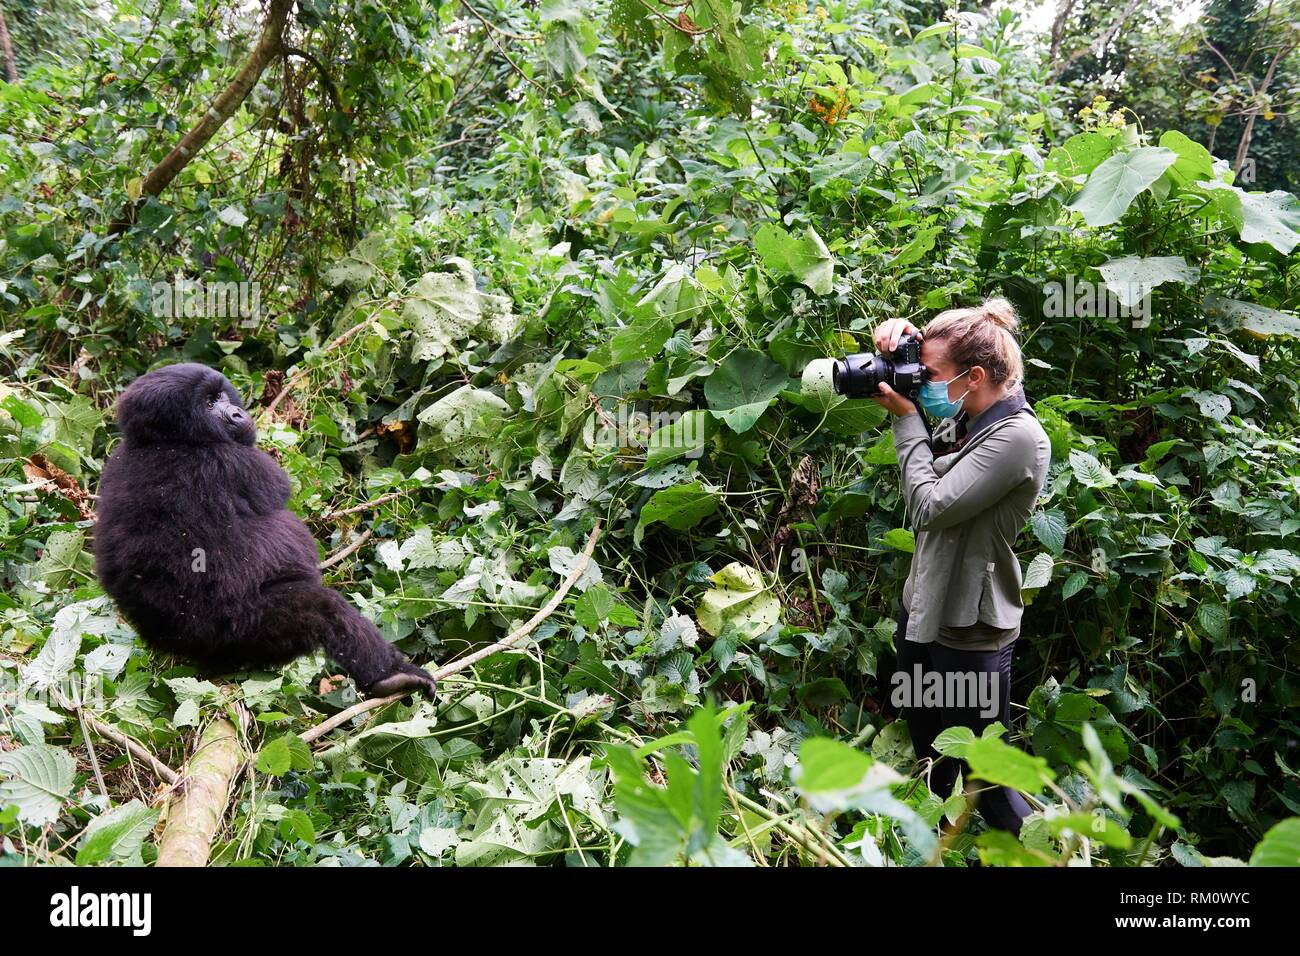 Tourist photographing Mountain gorilla (Gorilla beringei beringei). All humans have to wear safety masks in presence of gorillas to avoid any - Stock Image